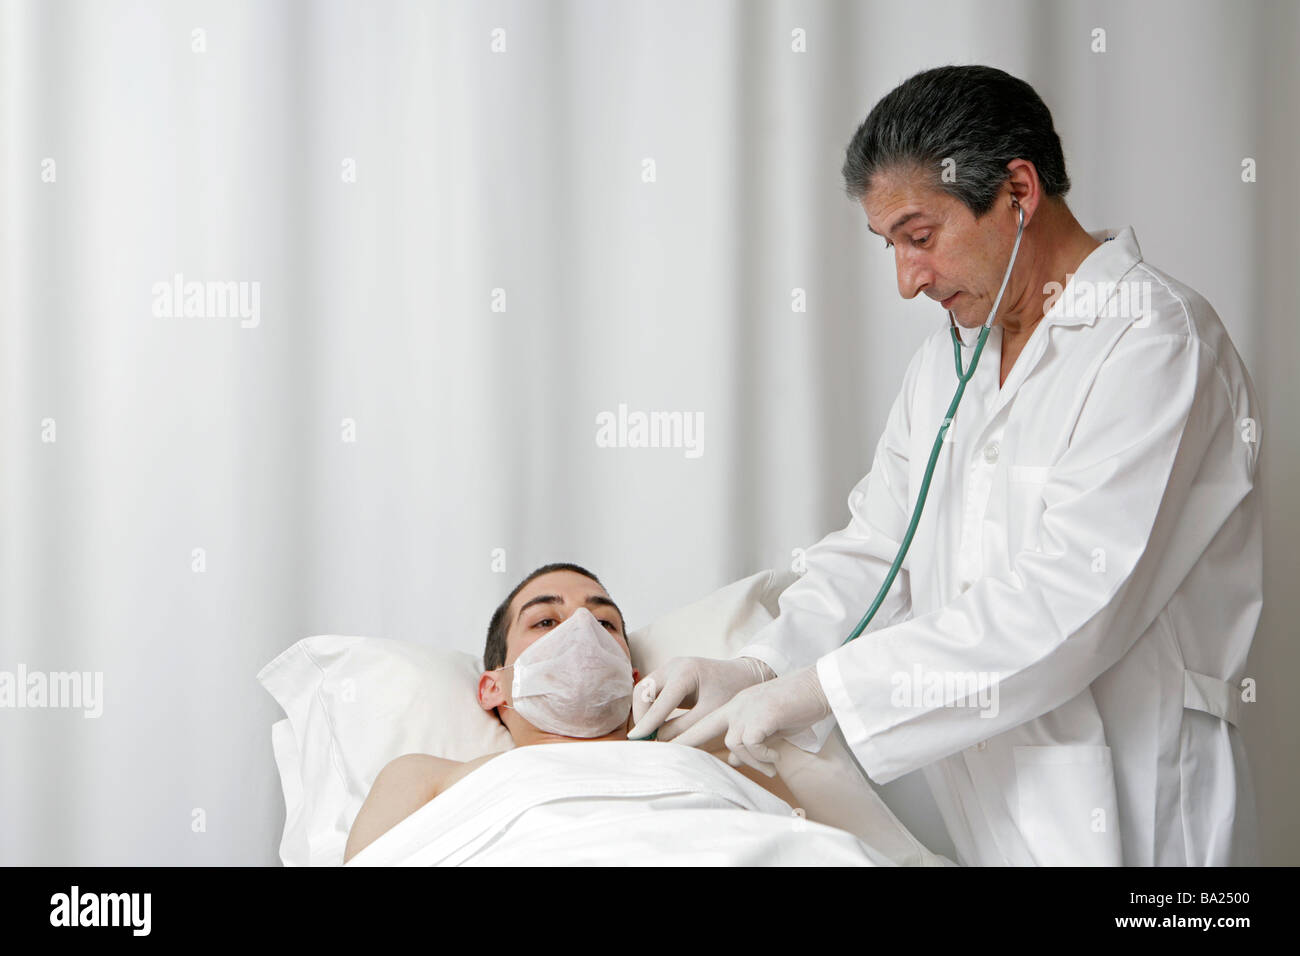 young male patient is being observed by doctor for health treatment - Stock Image